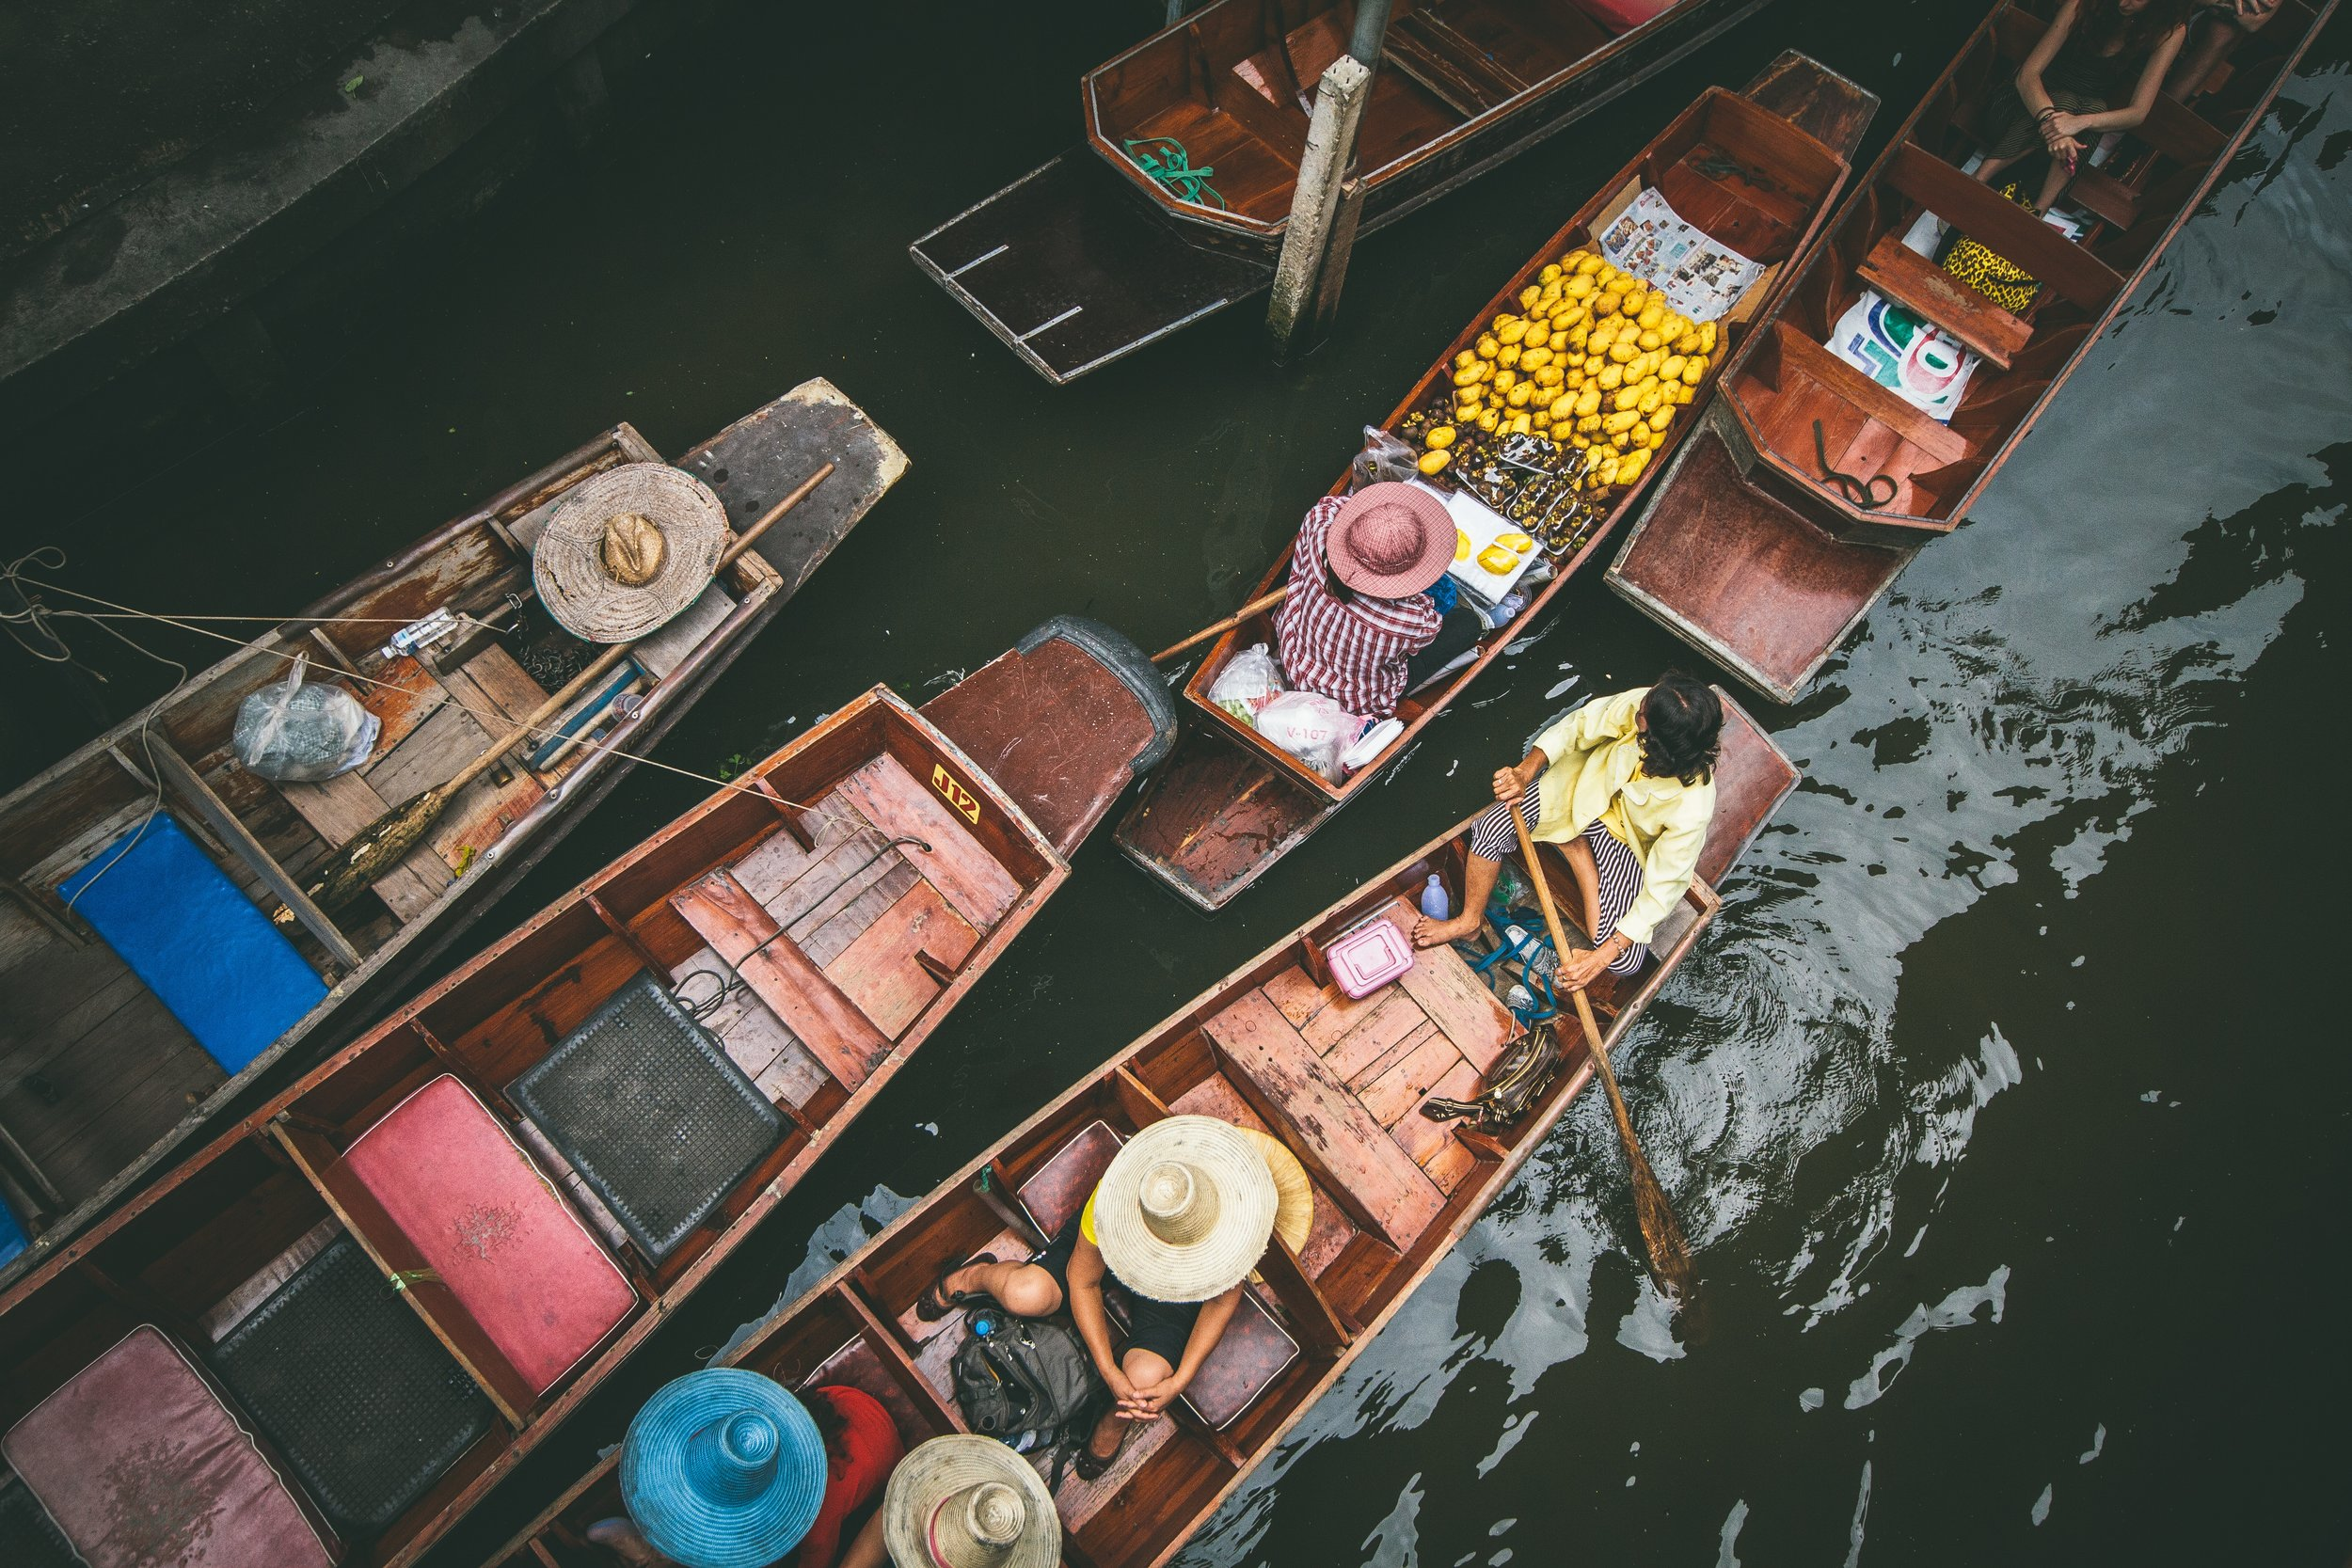 December: Thailand by Land - from temples to tattoos,parties to prayer, Thailand can best be describe as a beautiful mess. explore this cultural mystery on this 10 day tour.